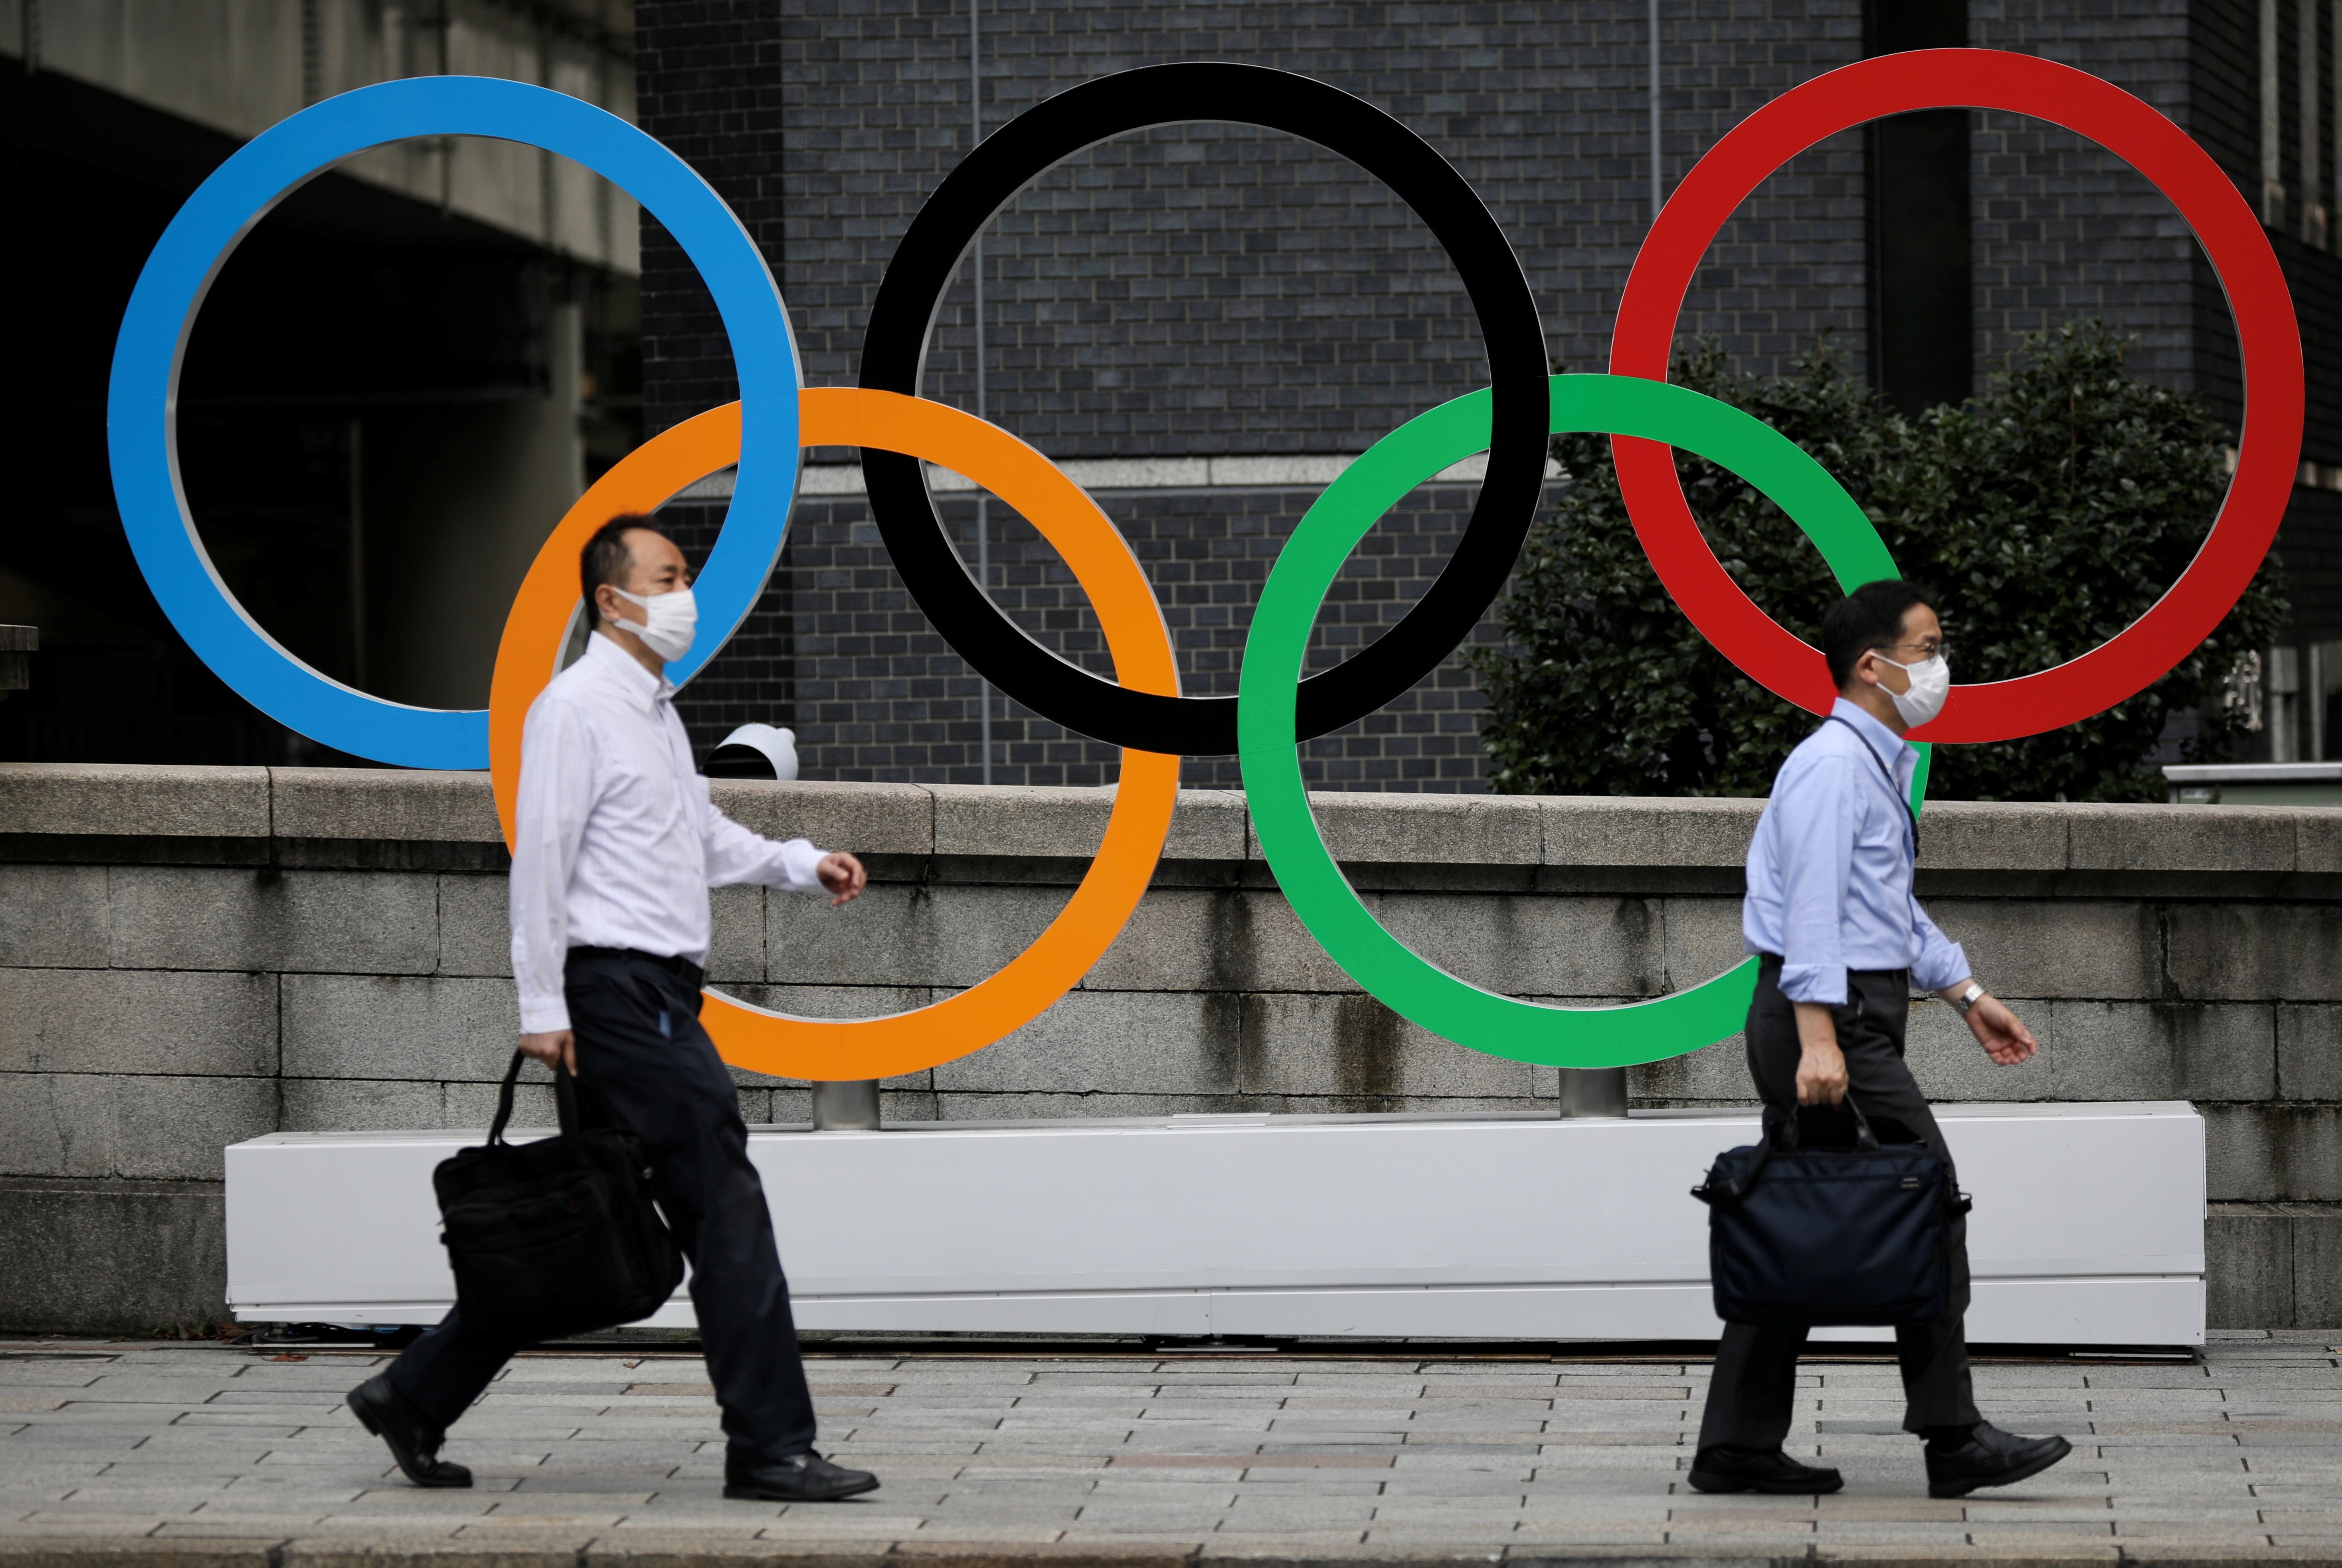 Men walk past the Olympic Rings in the commercial district of Nihonbashi during the Olympic games amid the coronavirus disease (COVID-19) outbreak in Tokyo, Japan August 4, 2021.    REUTERS/Kevin Coombs - RC2ZXO9V3VL1